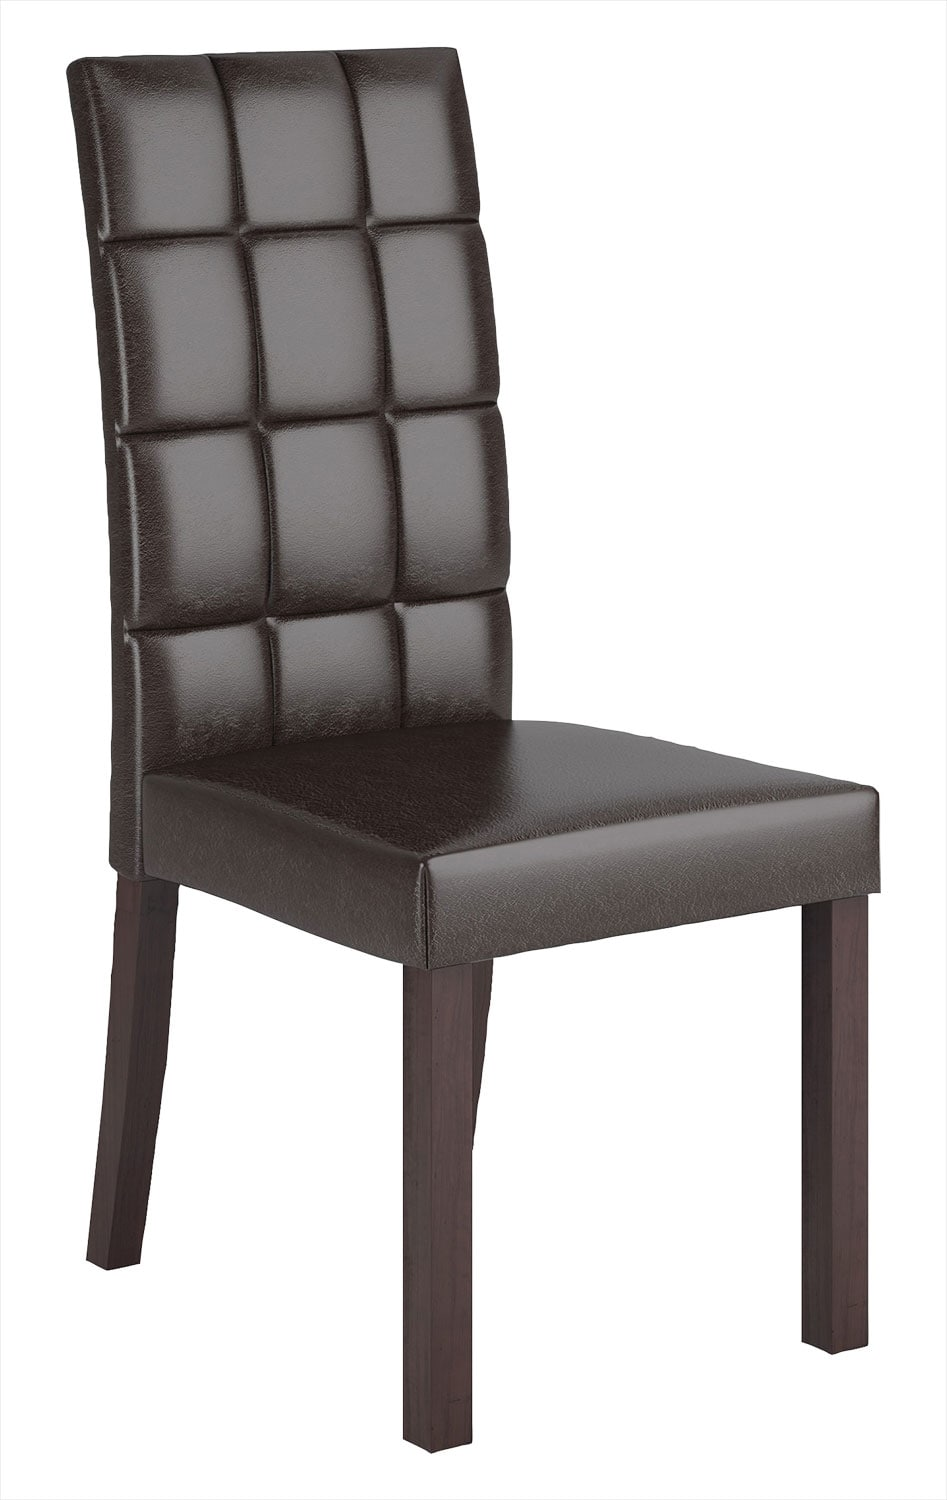 Dining Room Furniture - Atwood Faux Leather Dining Chair – Dark Brown